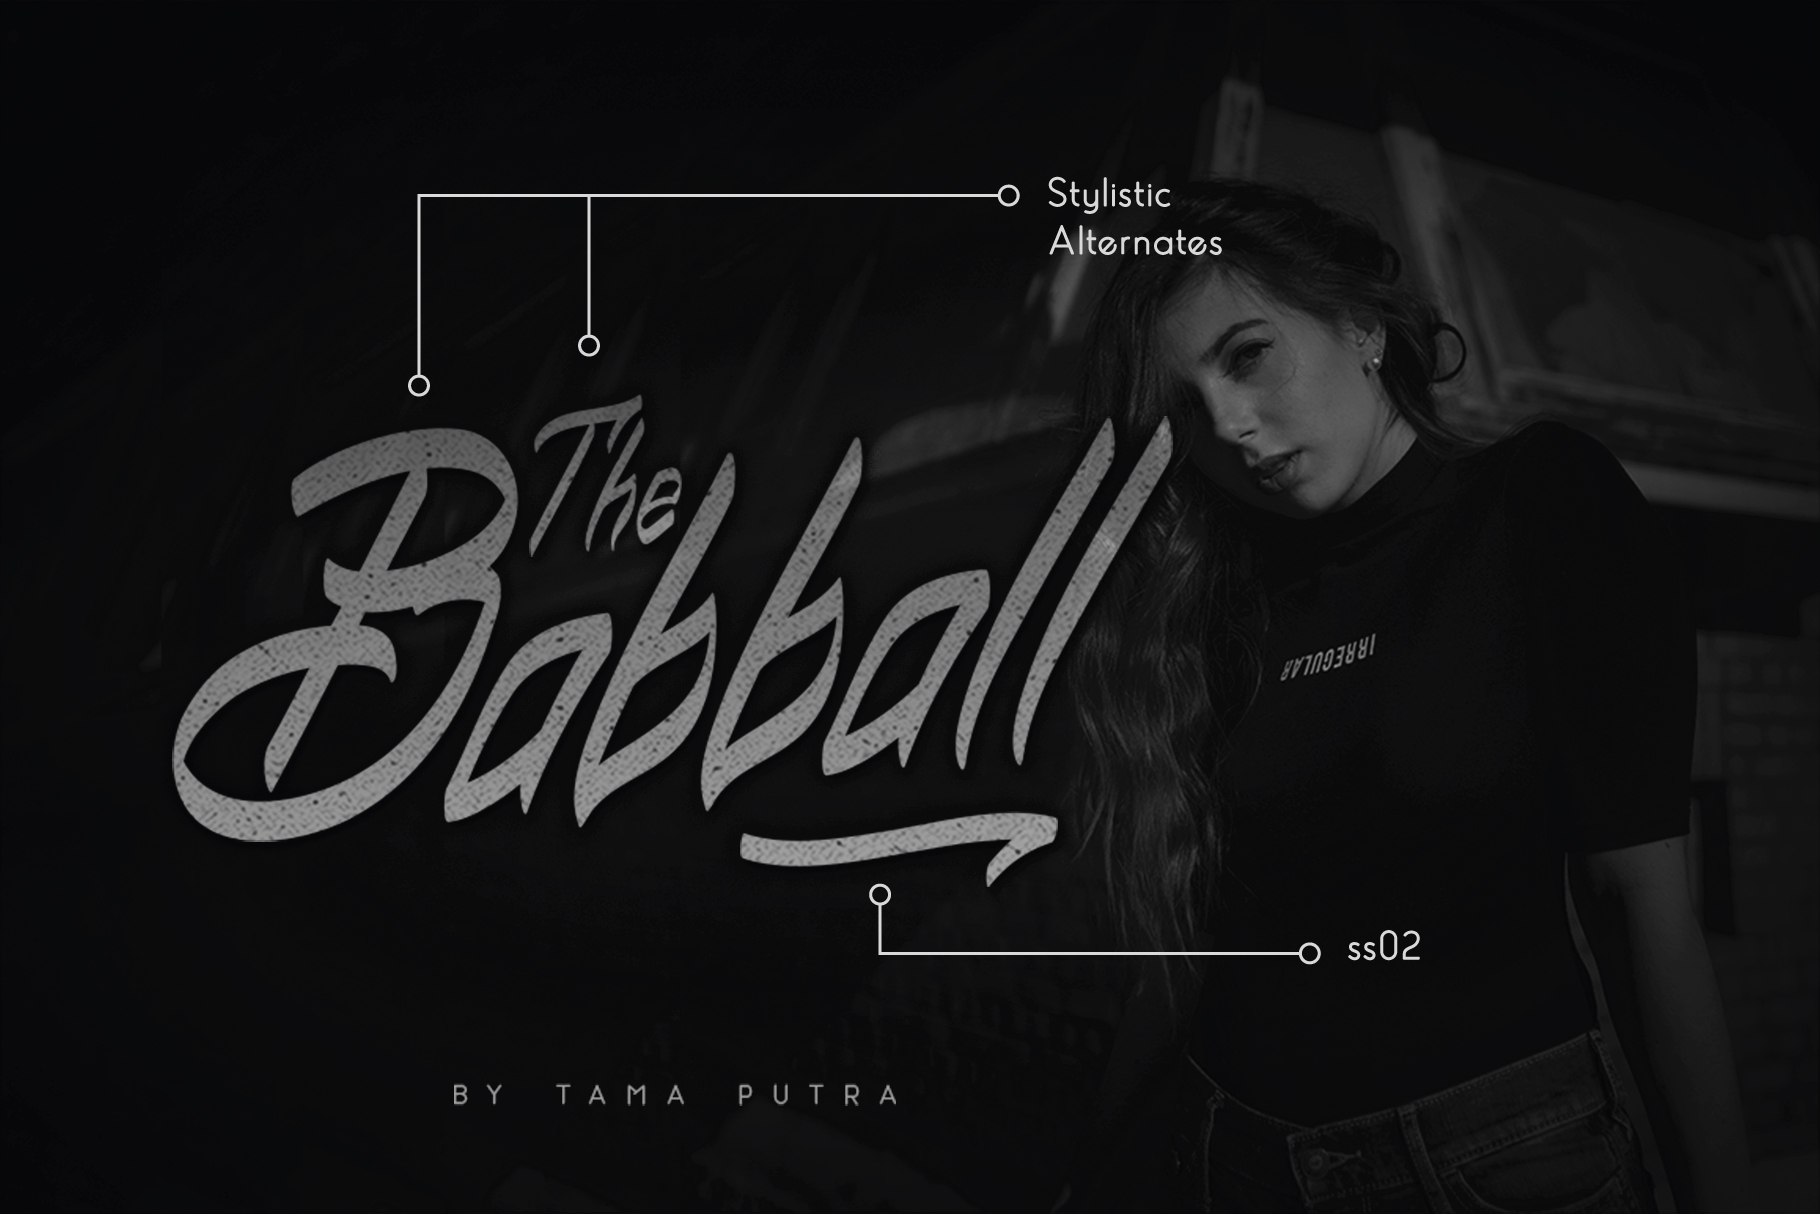 Babball Handwritten & Display Typeface example image 1